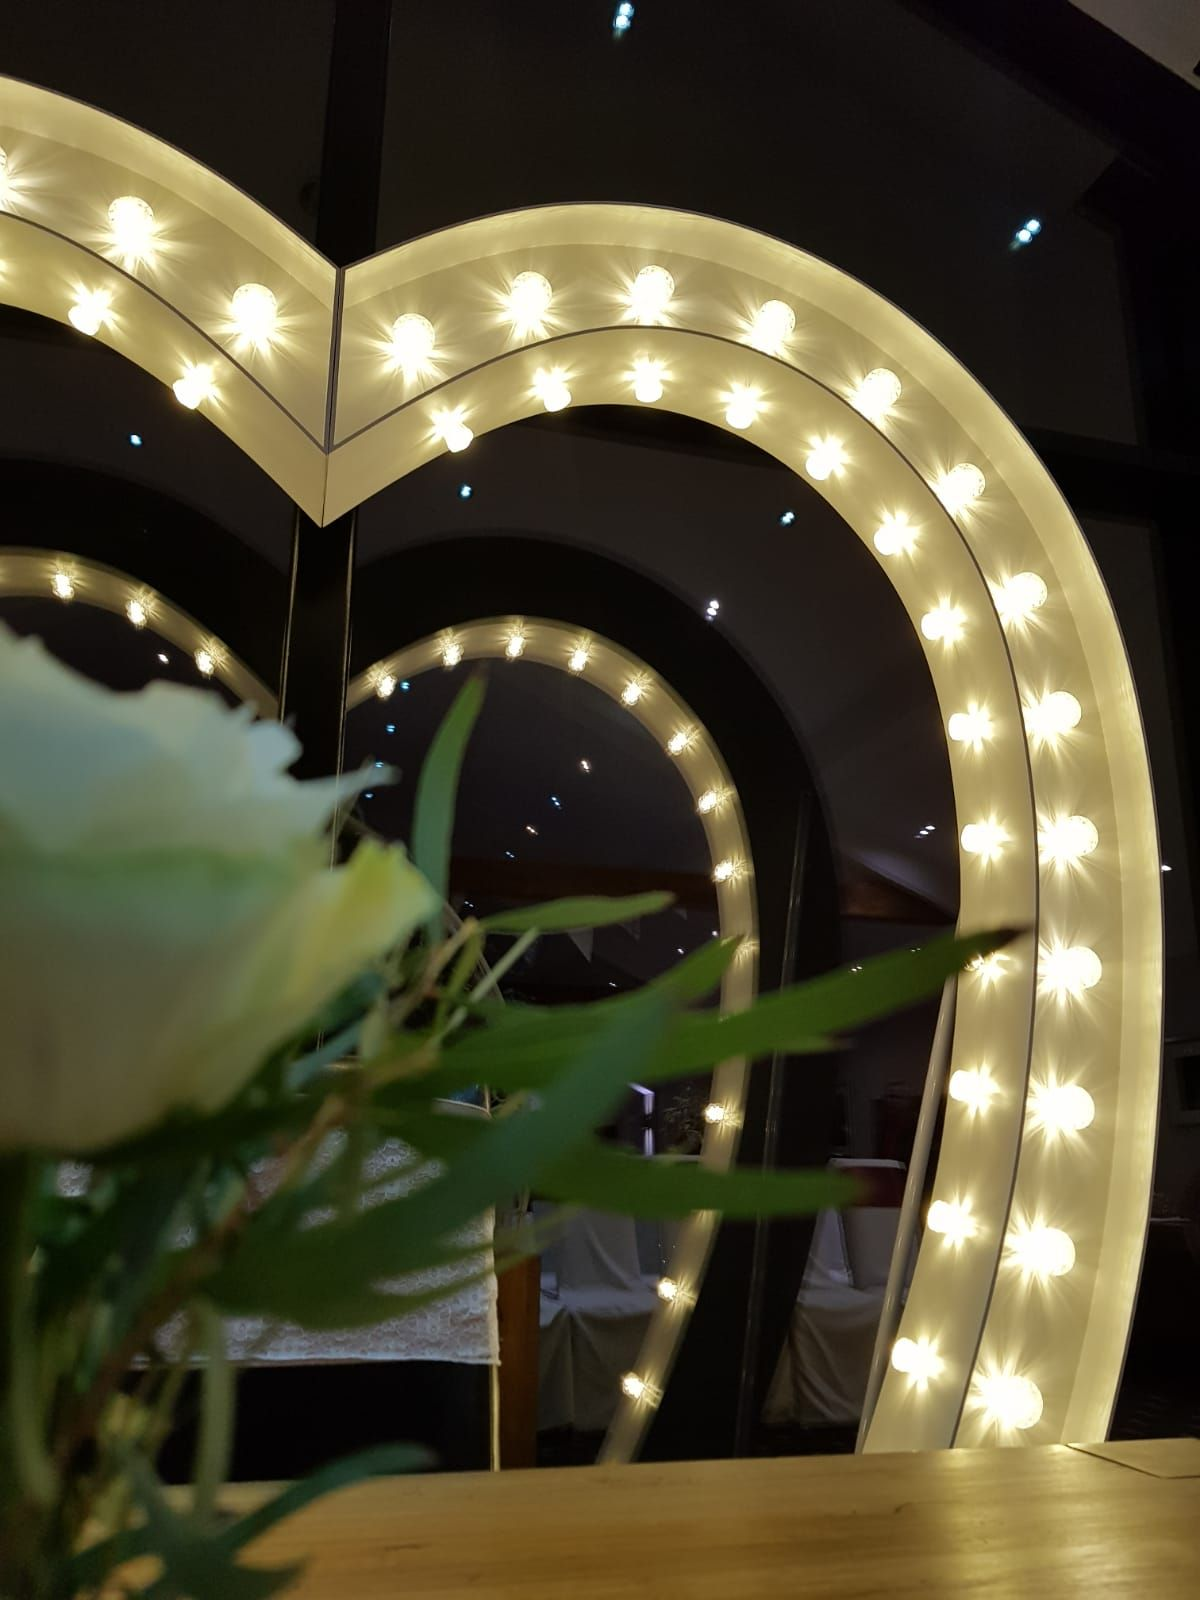 Close Up of Love Heart Arch in Front of Window